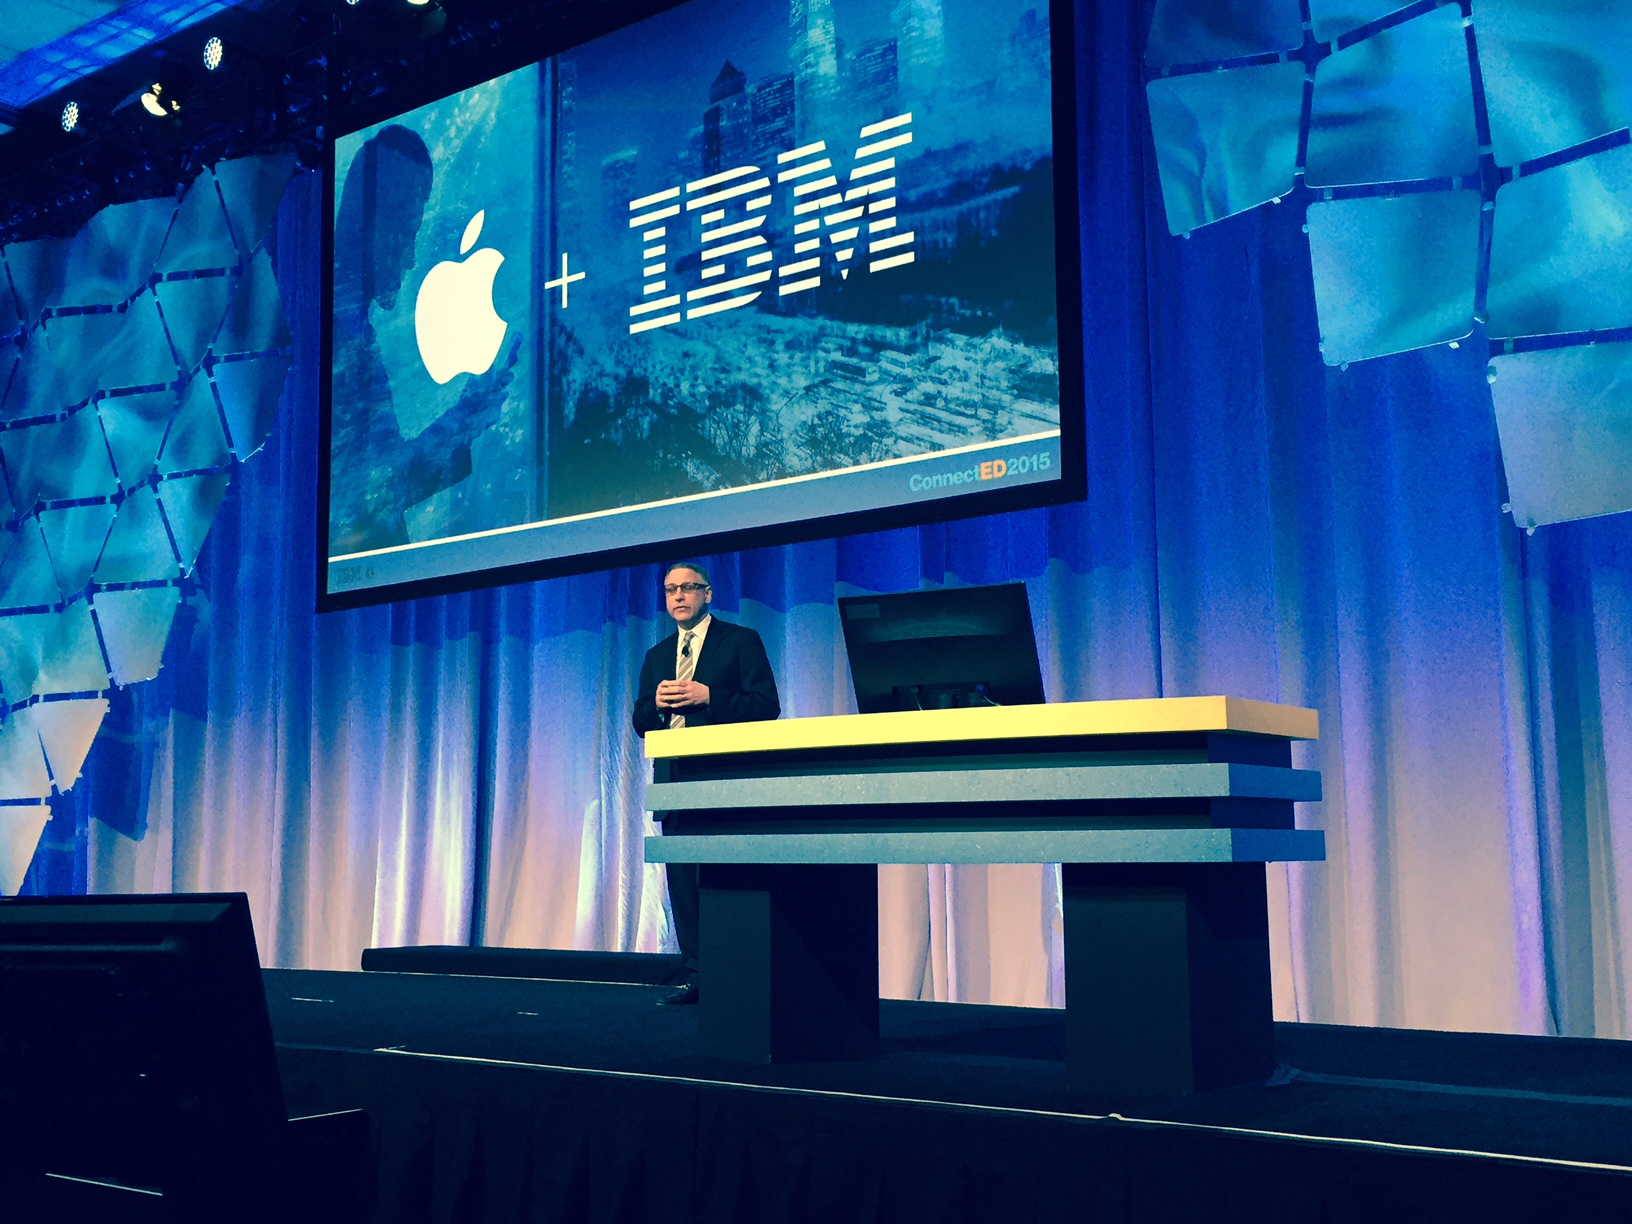 Jeff Schick on stage at IBM ConenctED 2015